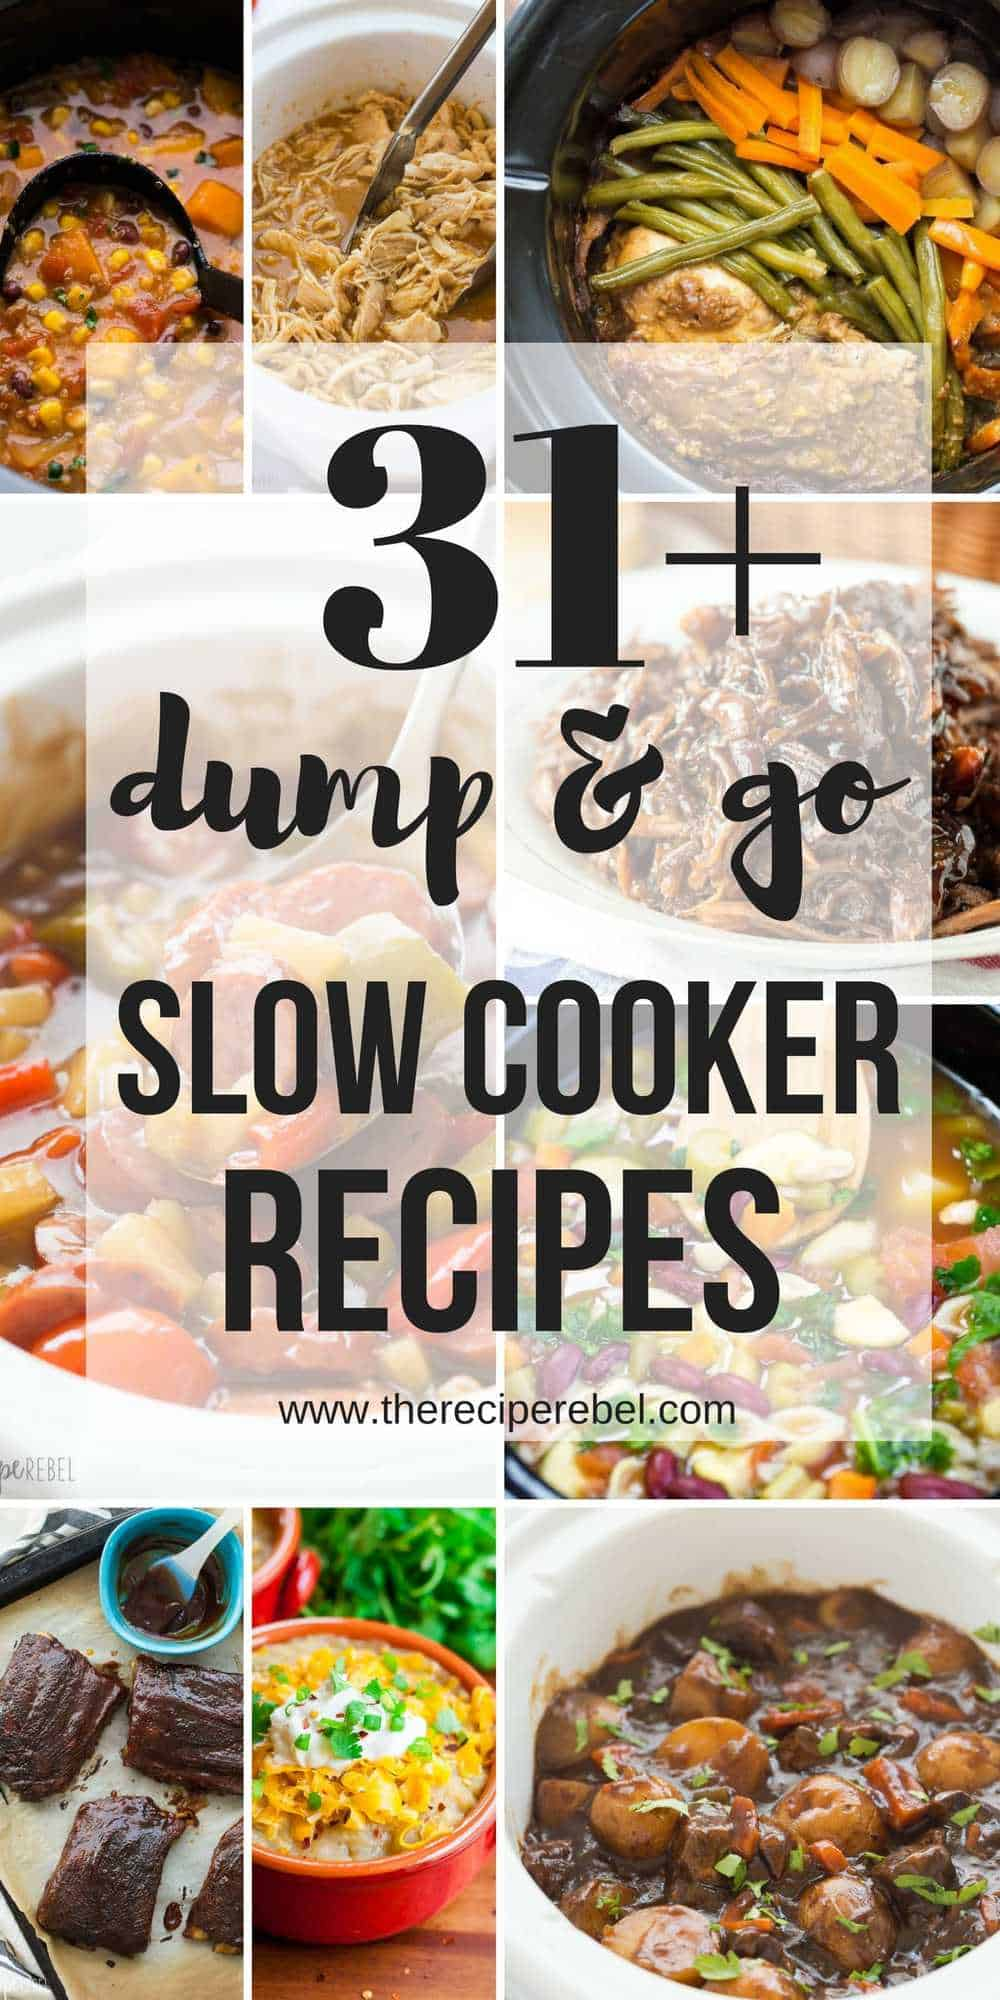 19 Dump And Go Slow Cooker Recipes Crock Pot Dump Meals